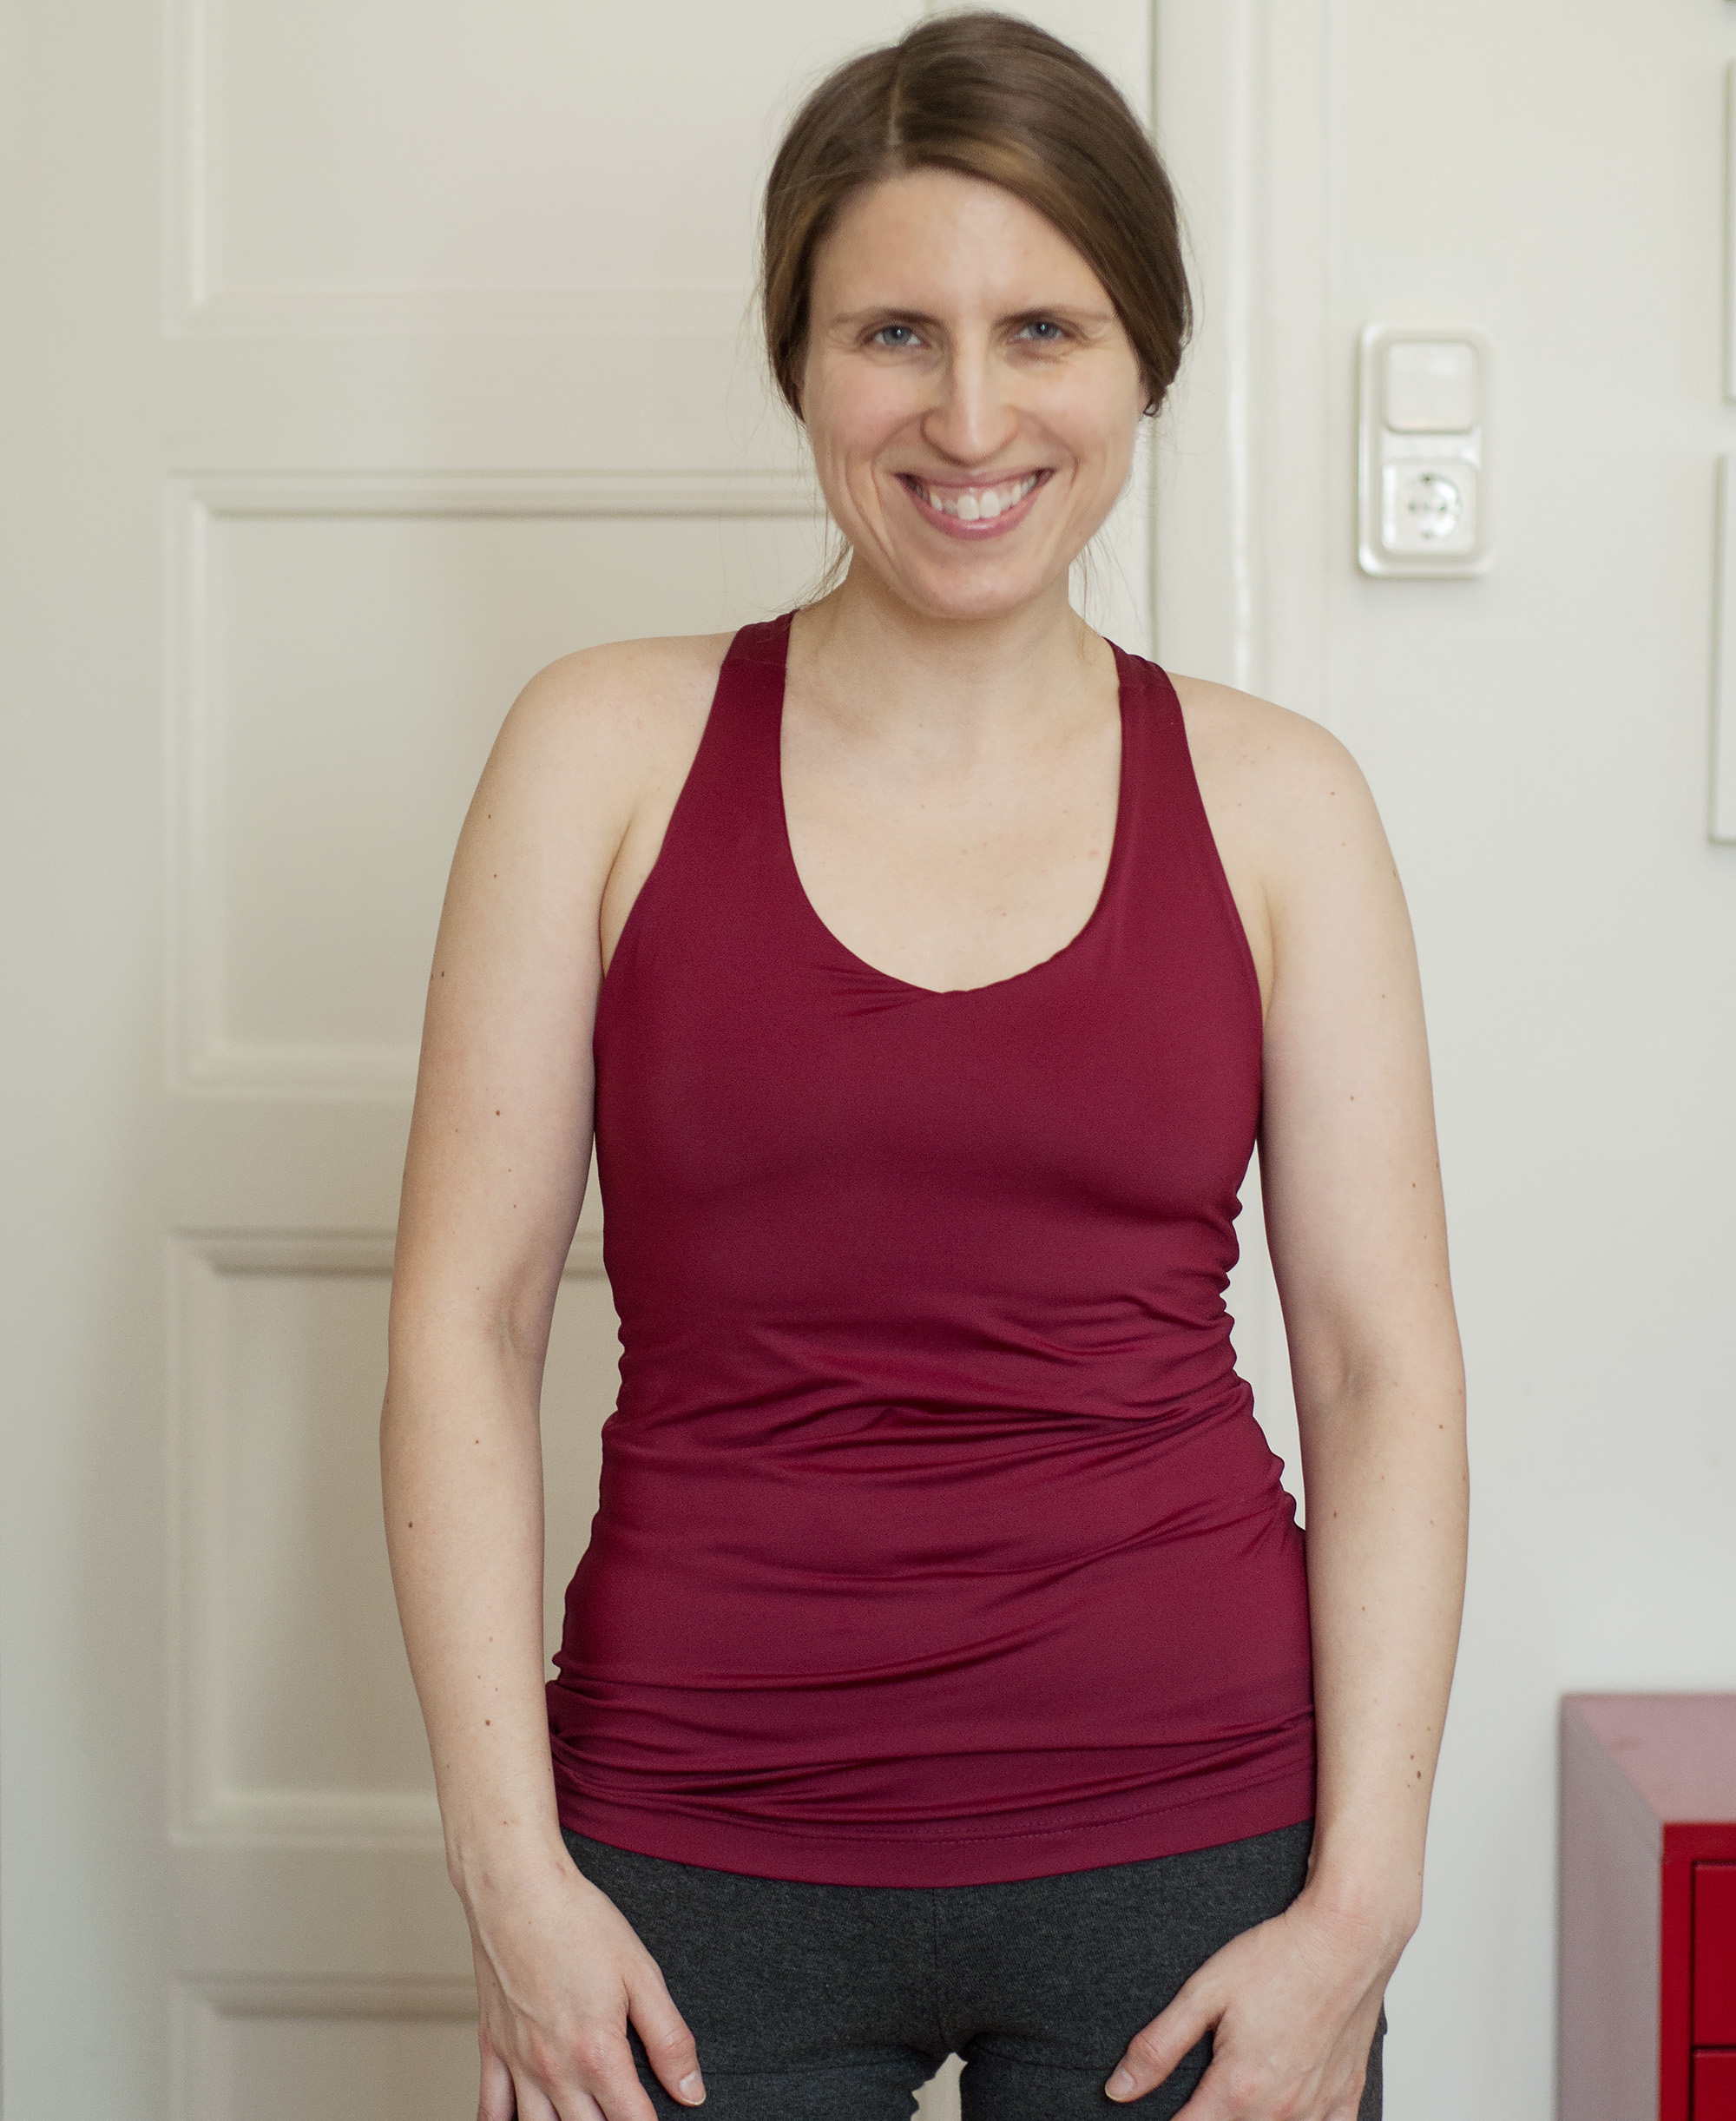 Burdastyle yoga top